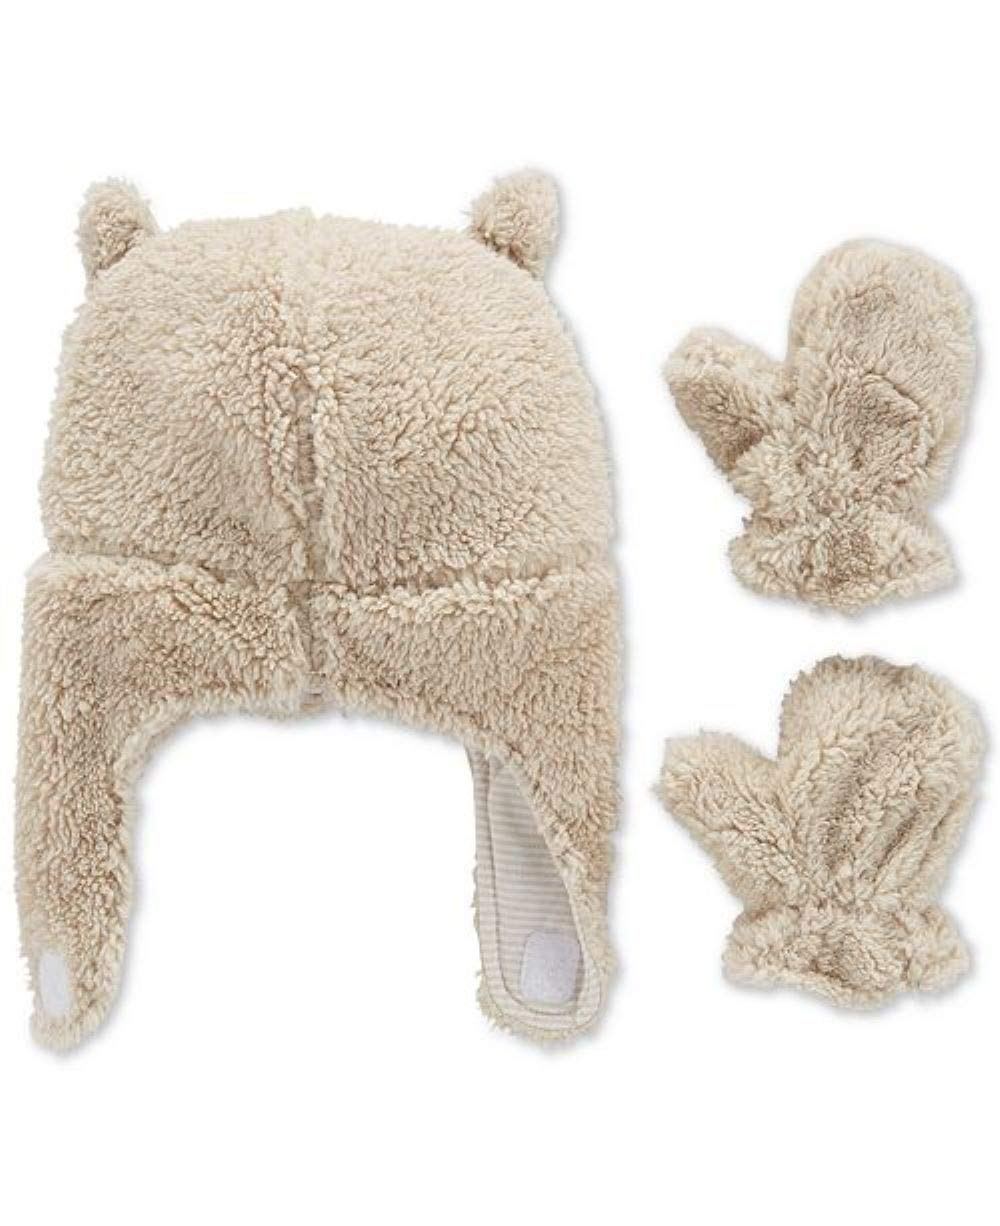 Carter's Baby Sherpa Hat & Mittens Set, Tan/Stripes, 12-24 Months by Carter's